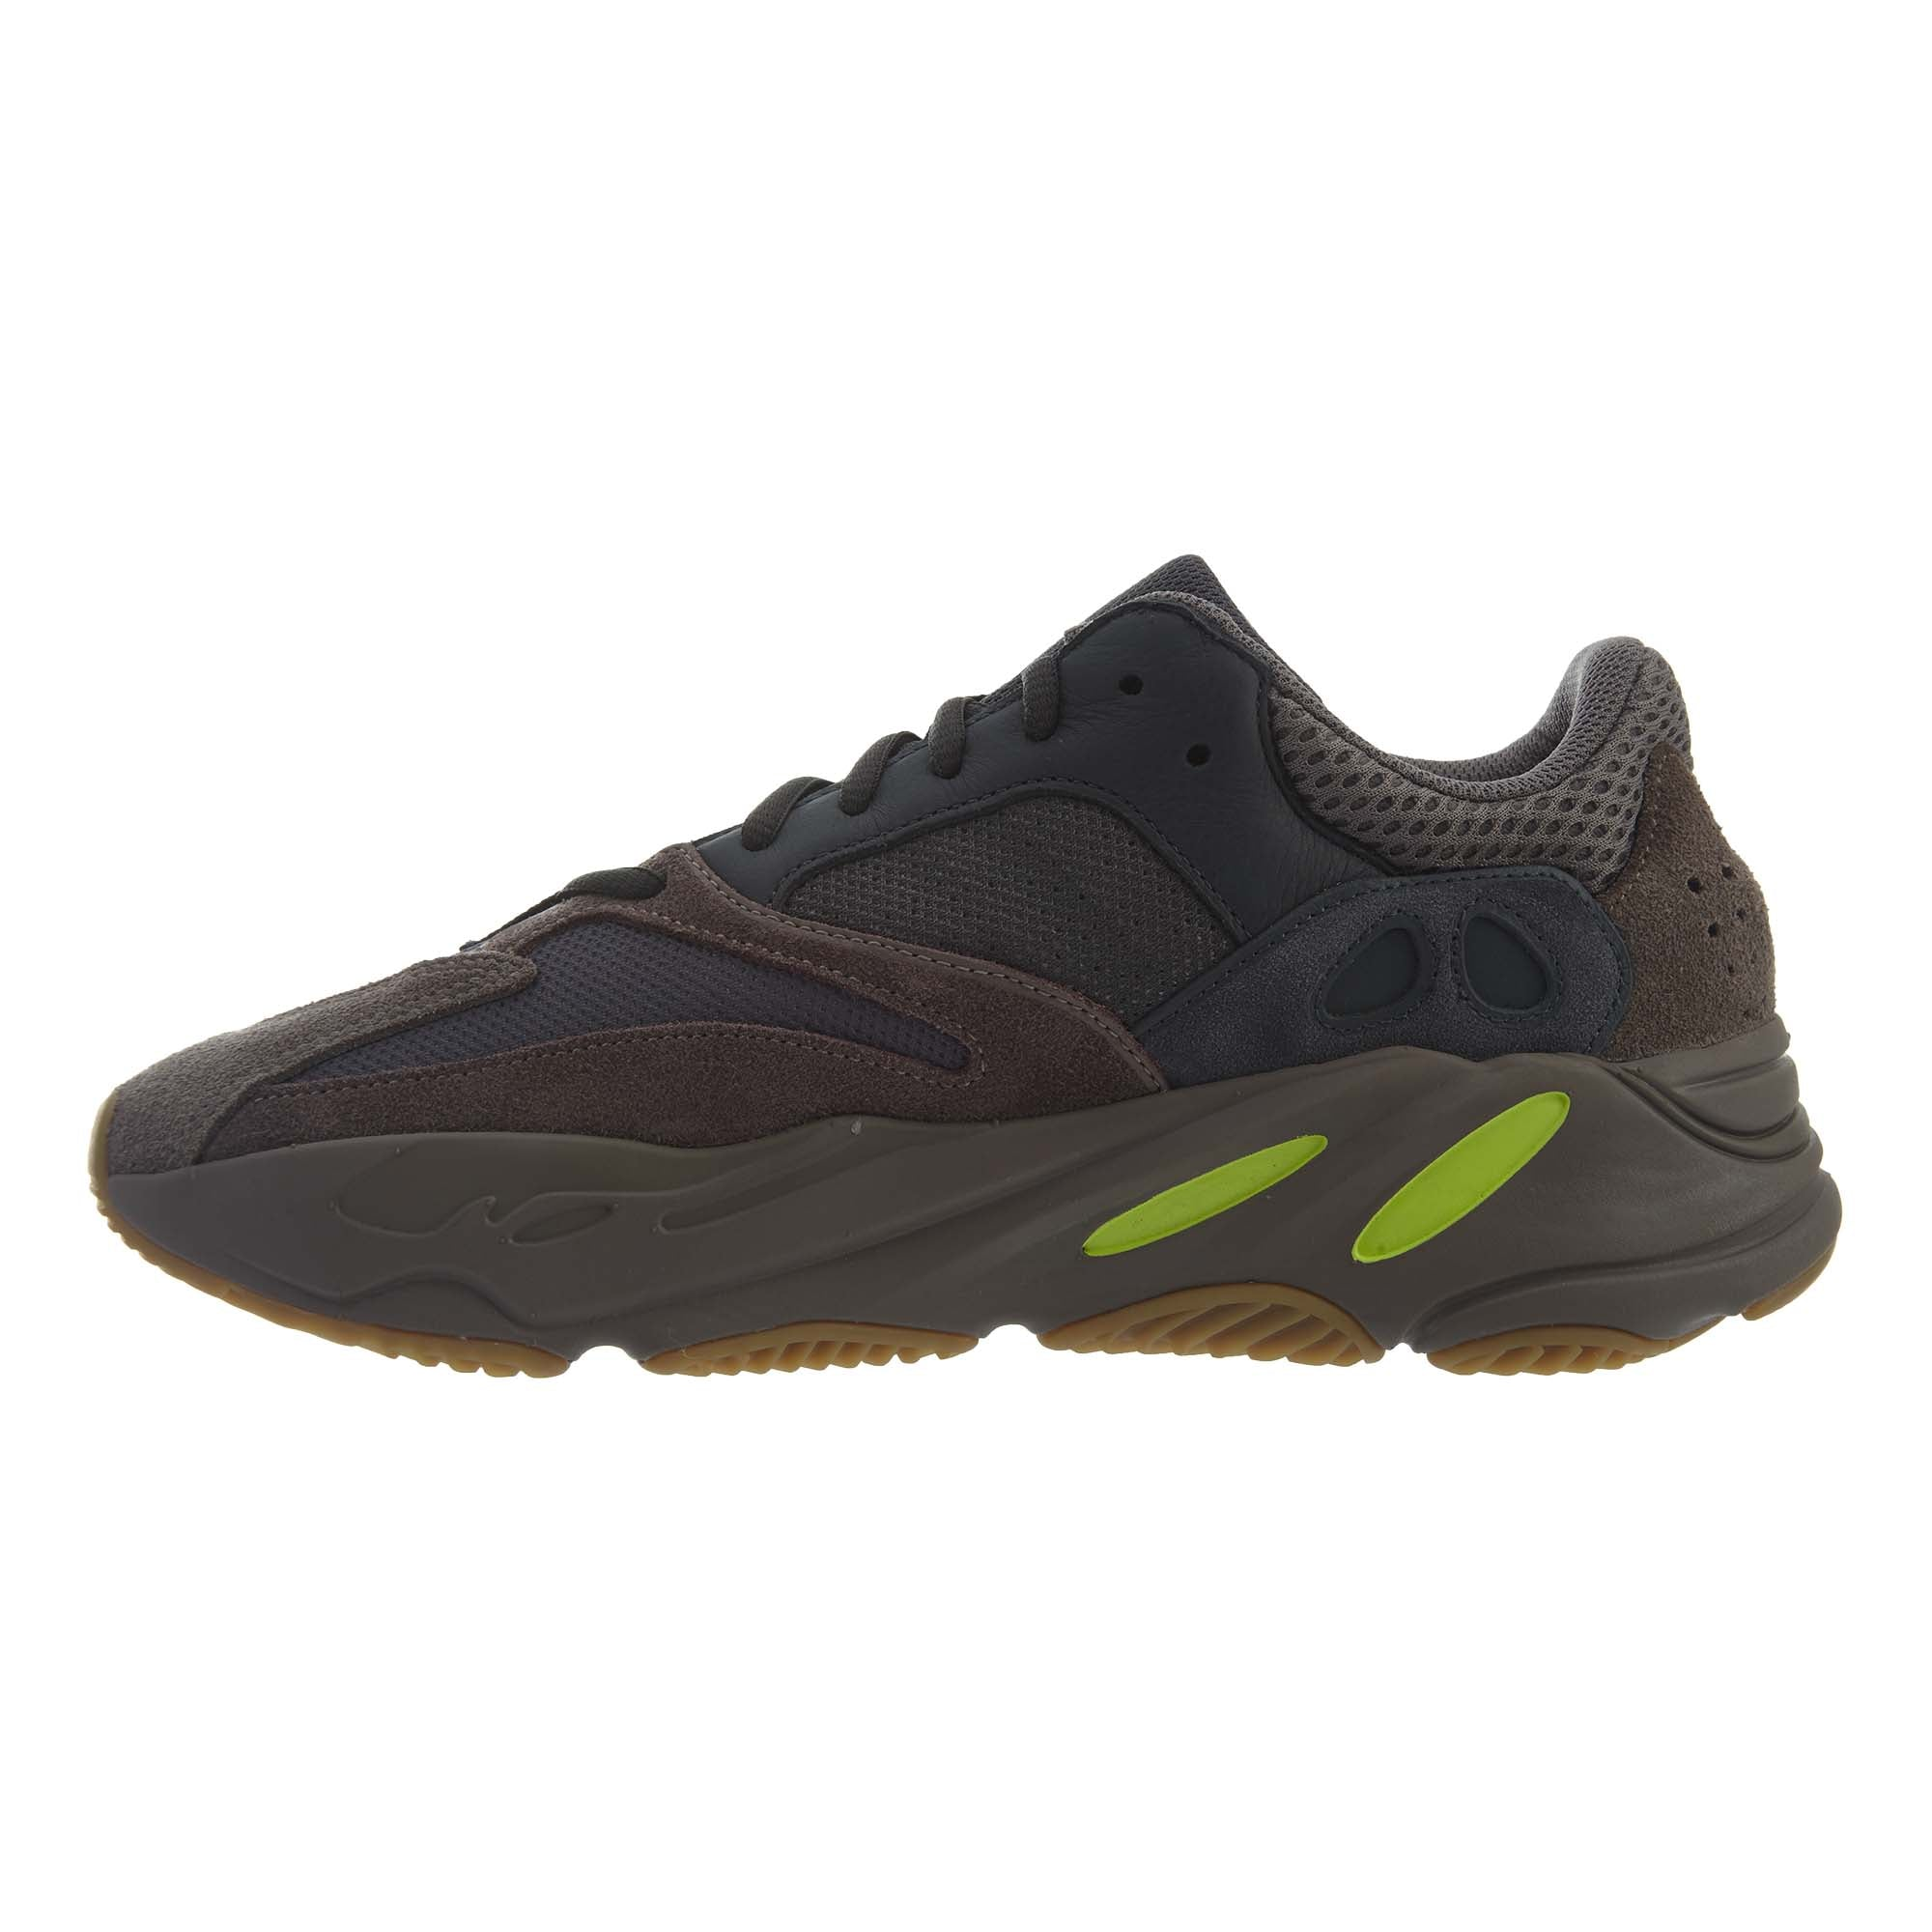 Adidas Yeezy Boost 700 Mens Style : Ee9614-MAUVE/MAUVE